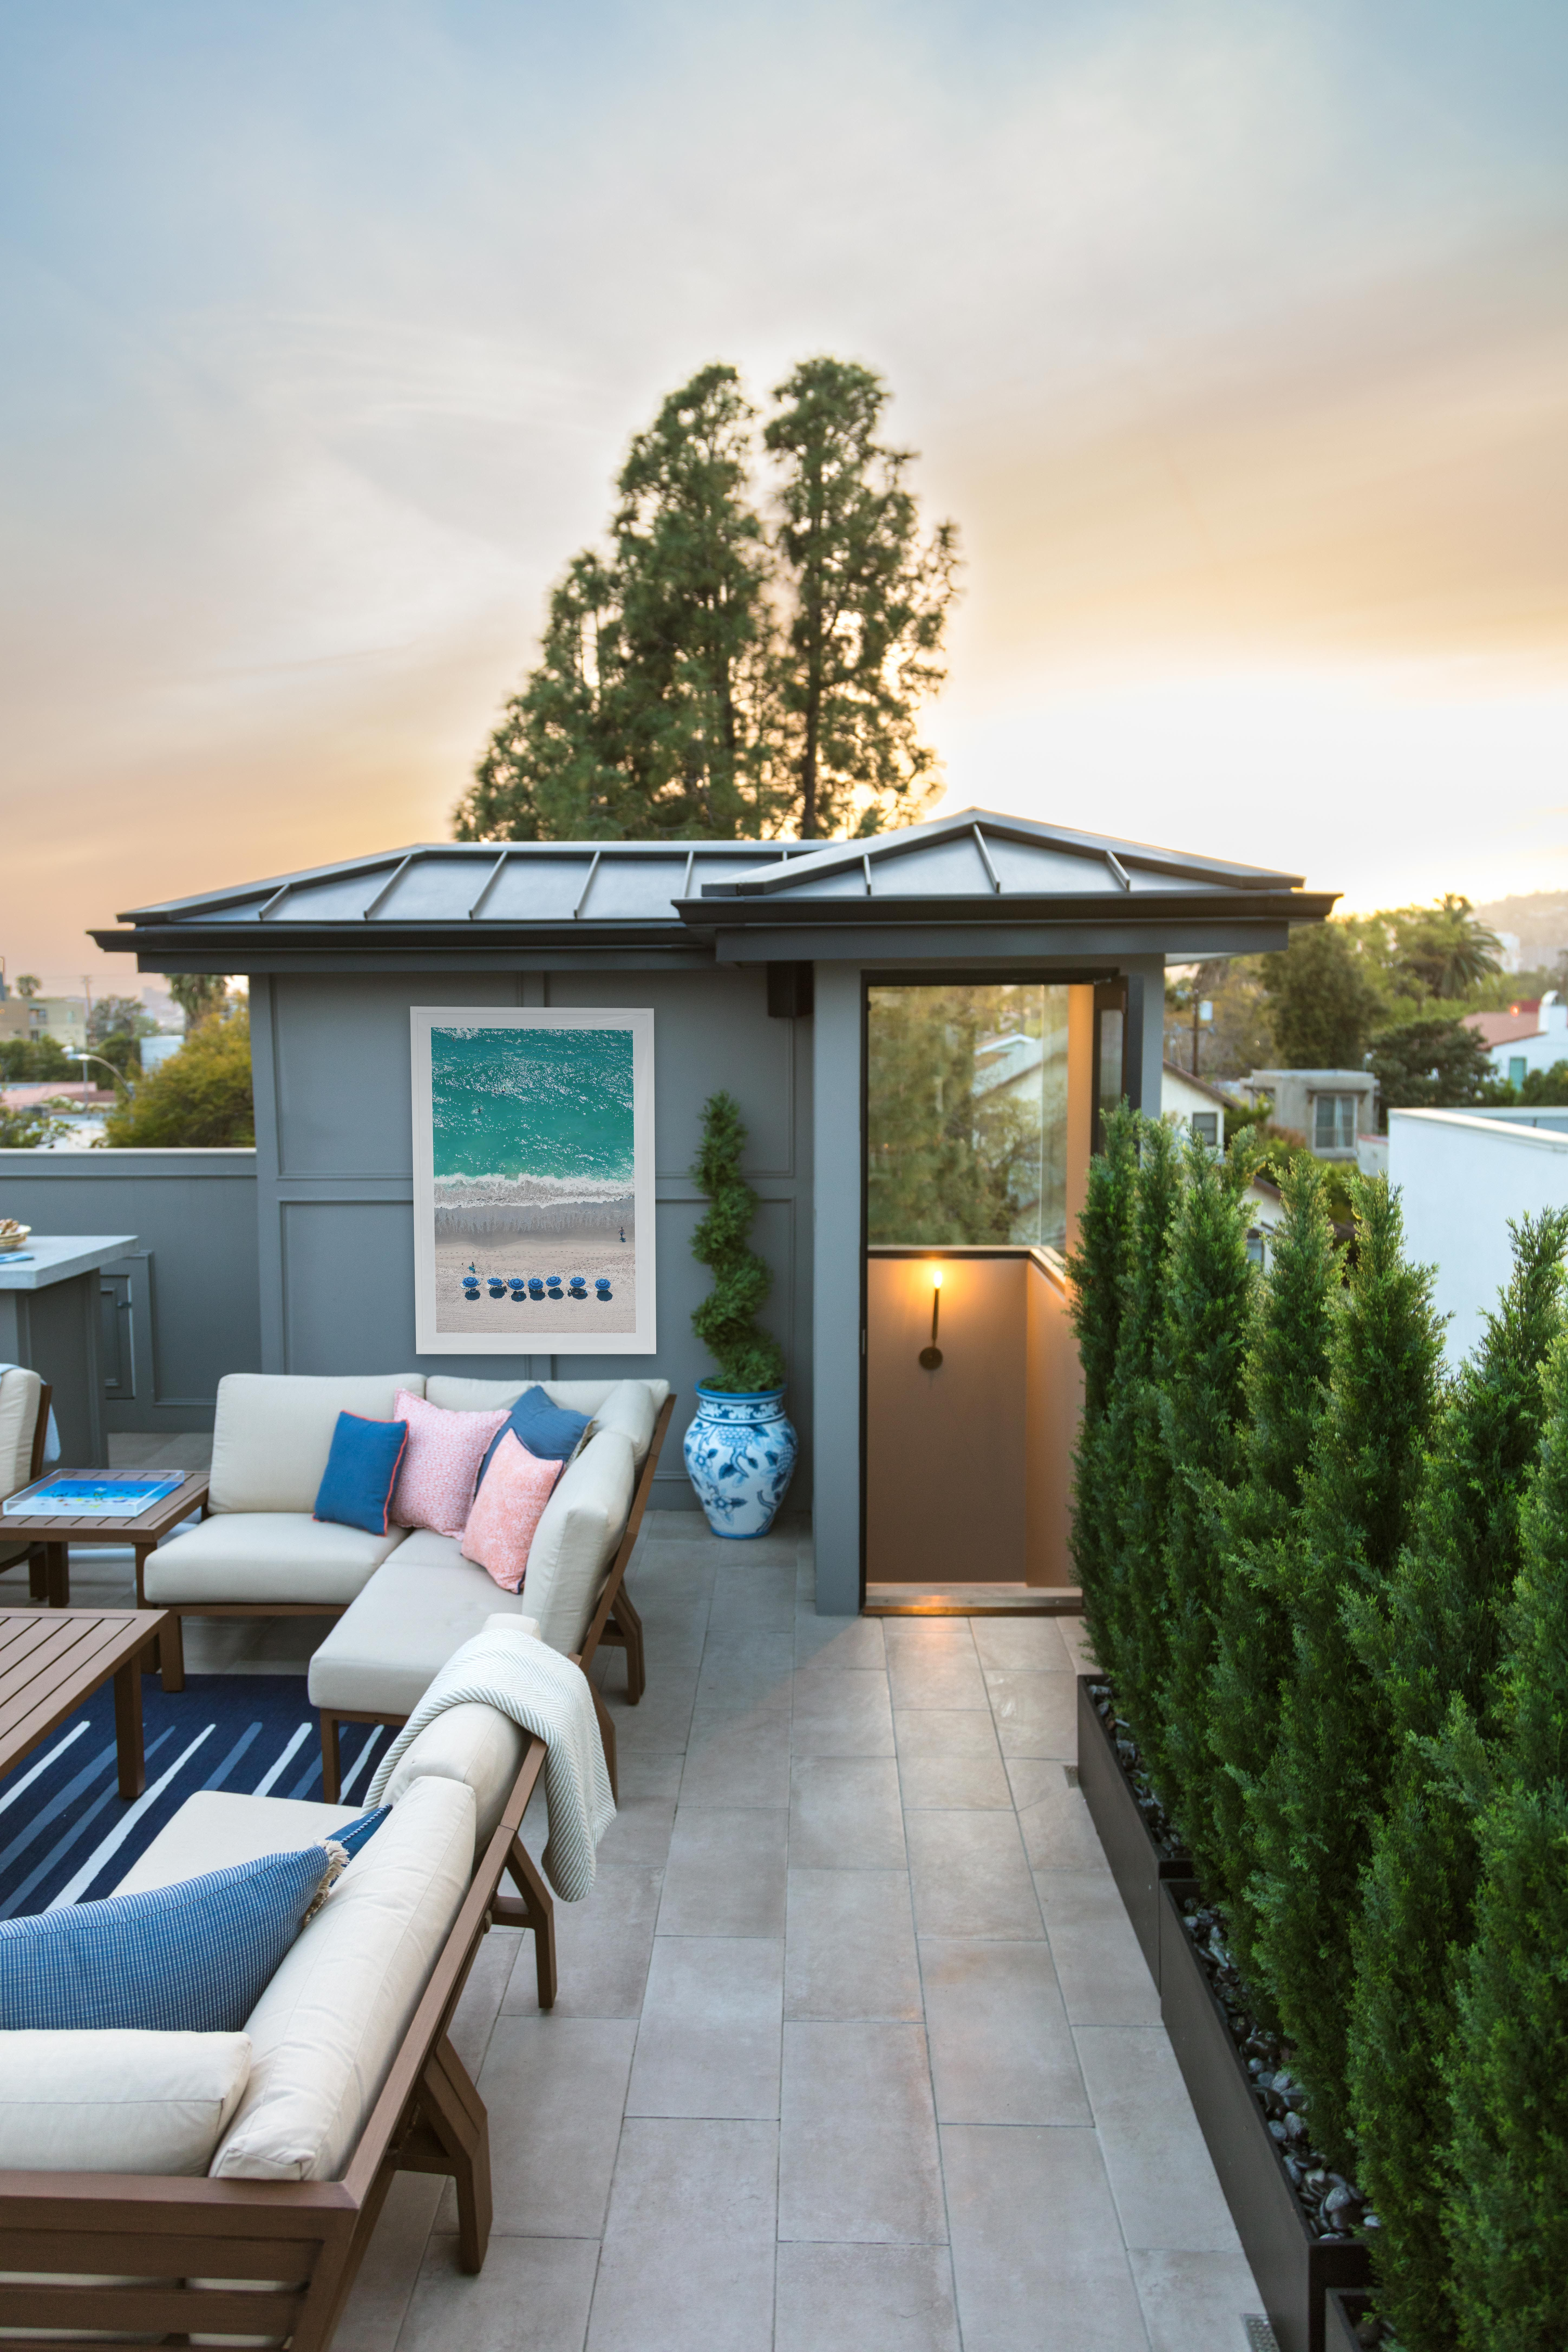 Gray S Home Week Five One Room Challenge Final Touches Outdoor Patio Space Rooftop Design Patio